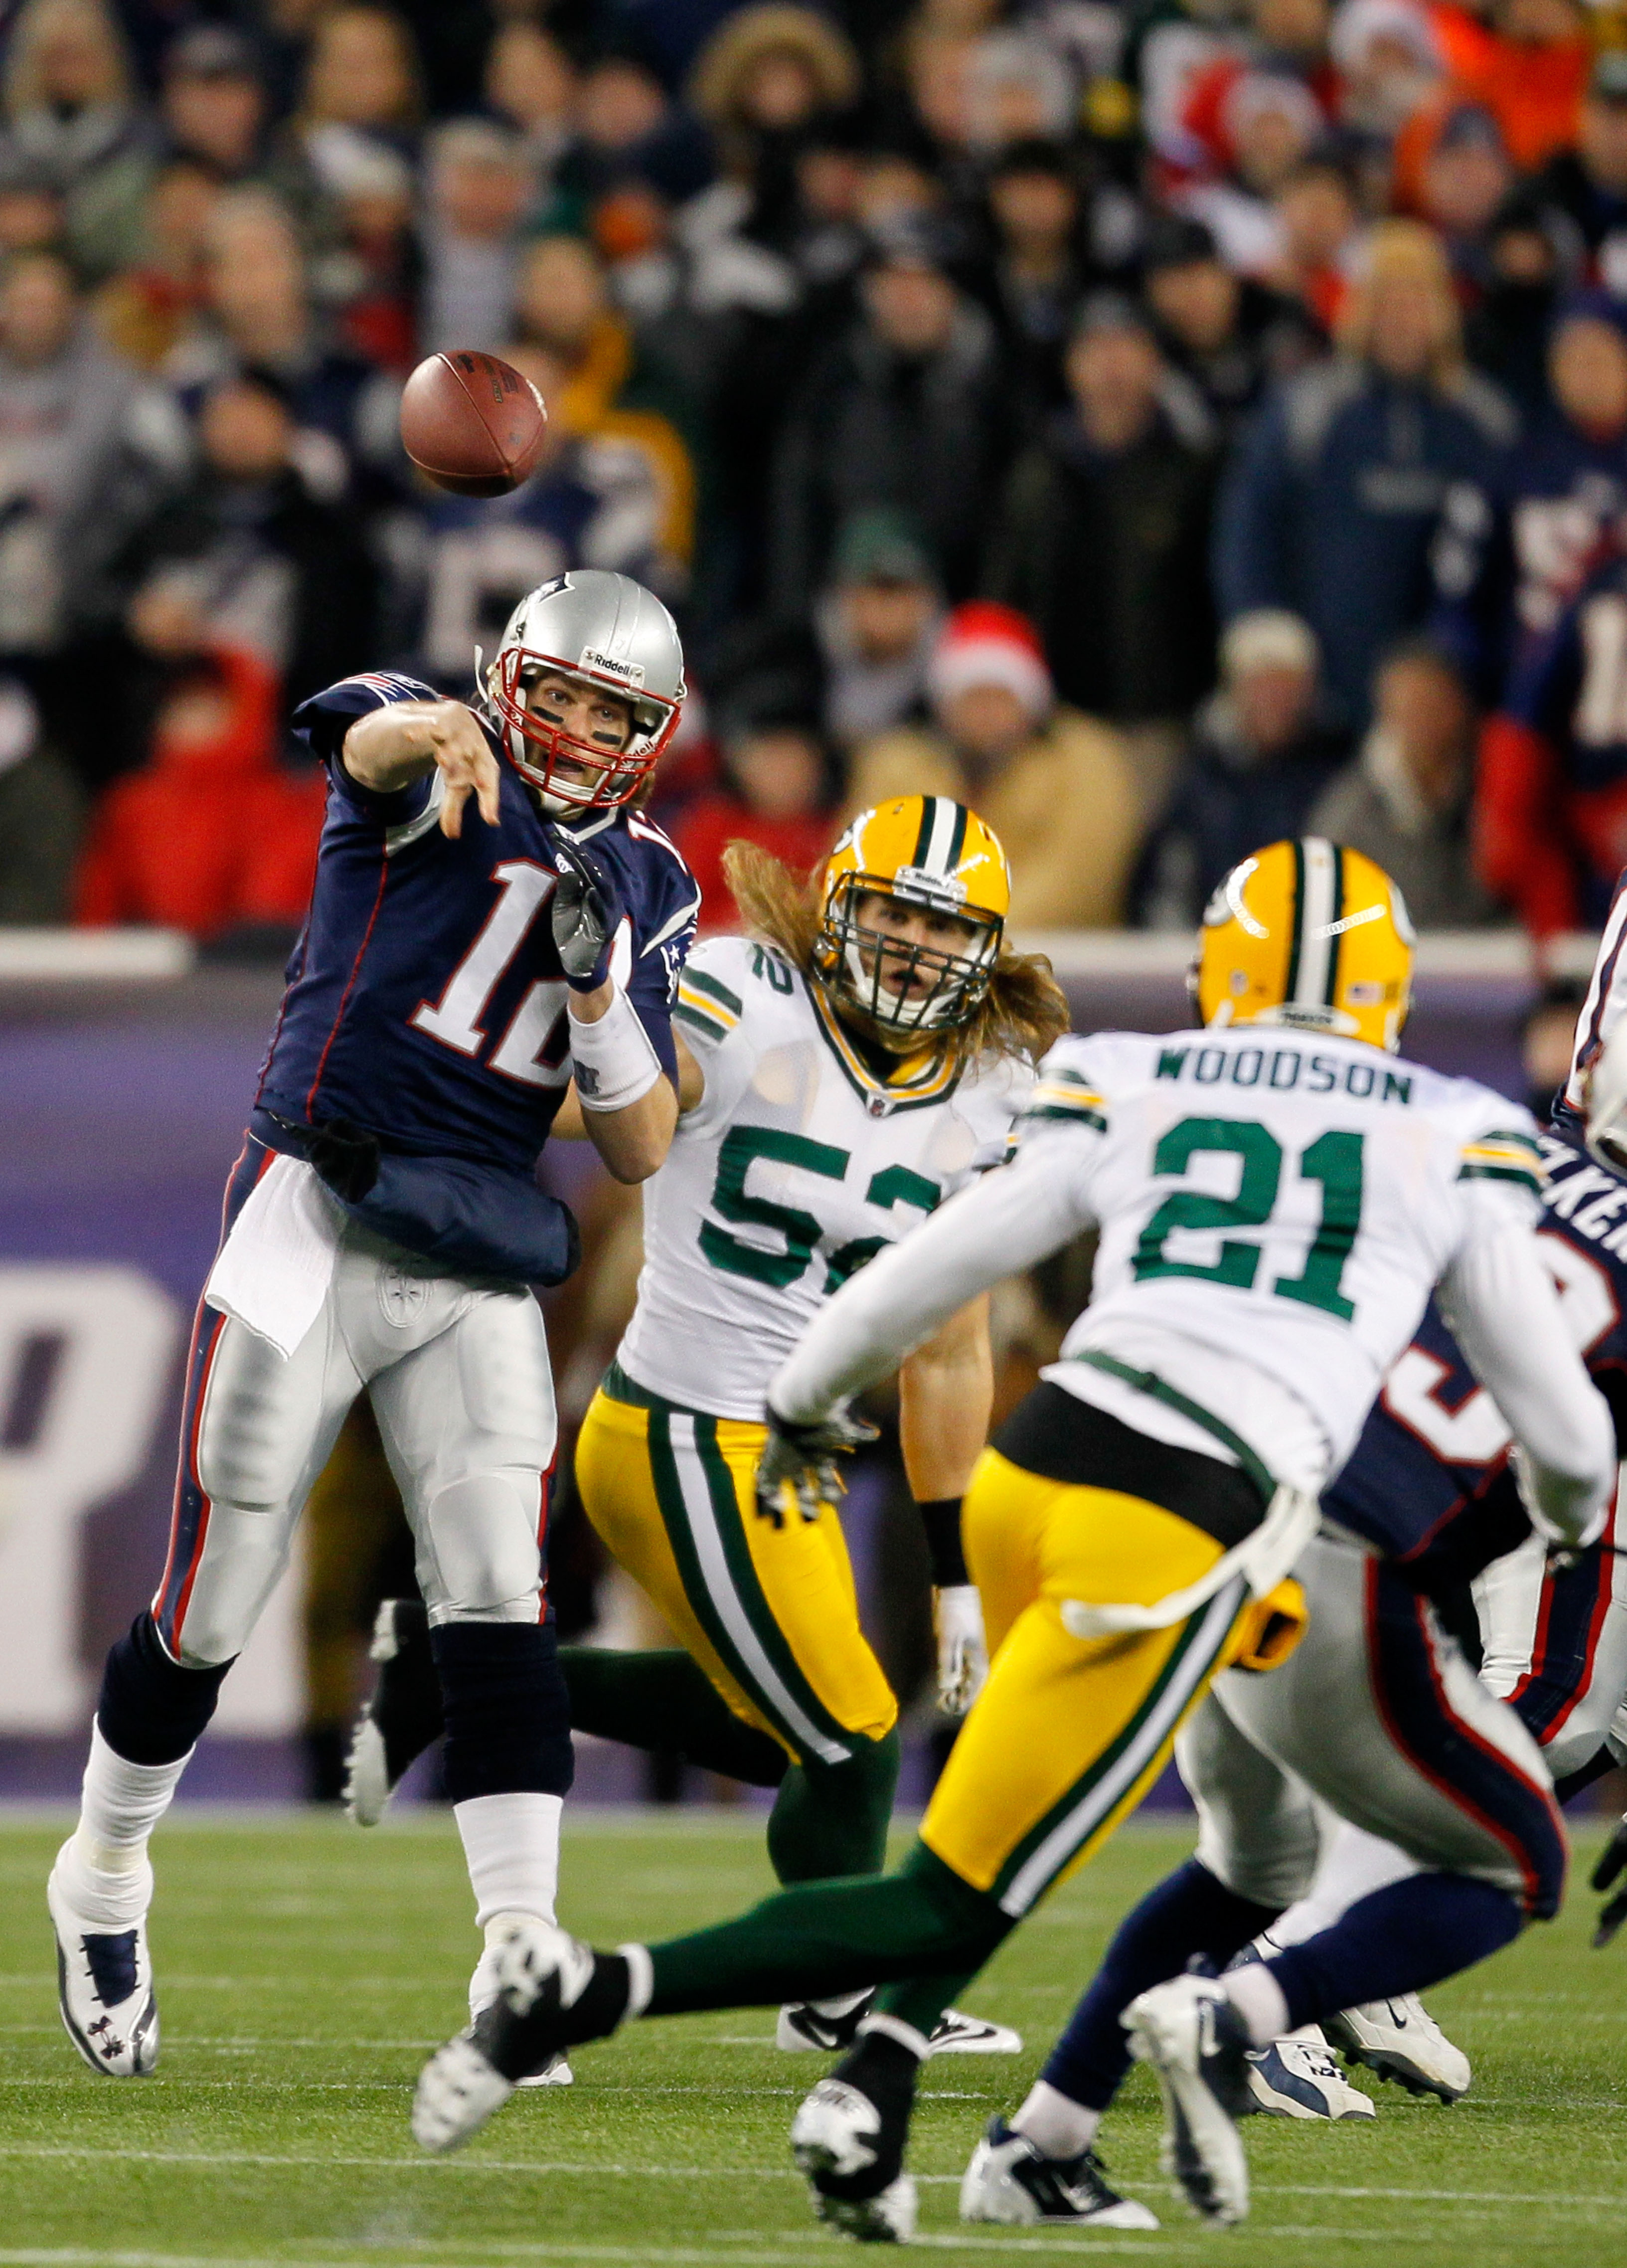 FOXBORO, MA - DECEMBER 19:  Quarterback Tom Brady #12 of the New England Patriots throws a pass against the Green Bay Packers in the first quarter of the game at Gillette Stadium on December 19, 2010 in Foxboro, Massachusetts.  (Photo by Jim Rogash/Getty